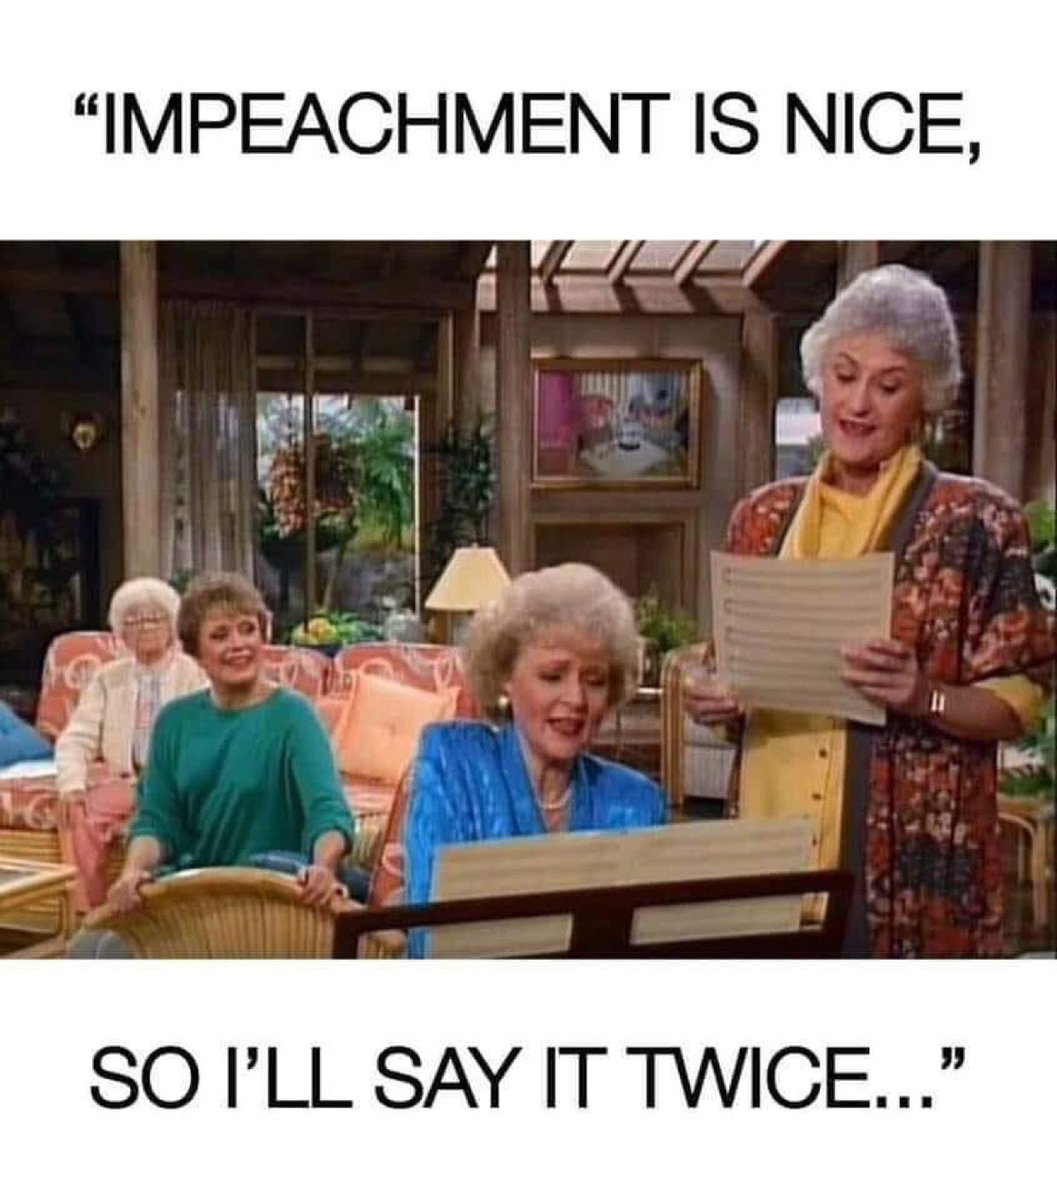 LOL 🤣 I can hear them singing it!  #GoldenGirls #impeachment  #ImpeachTrump  #ImpeachedTwice